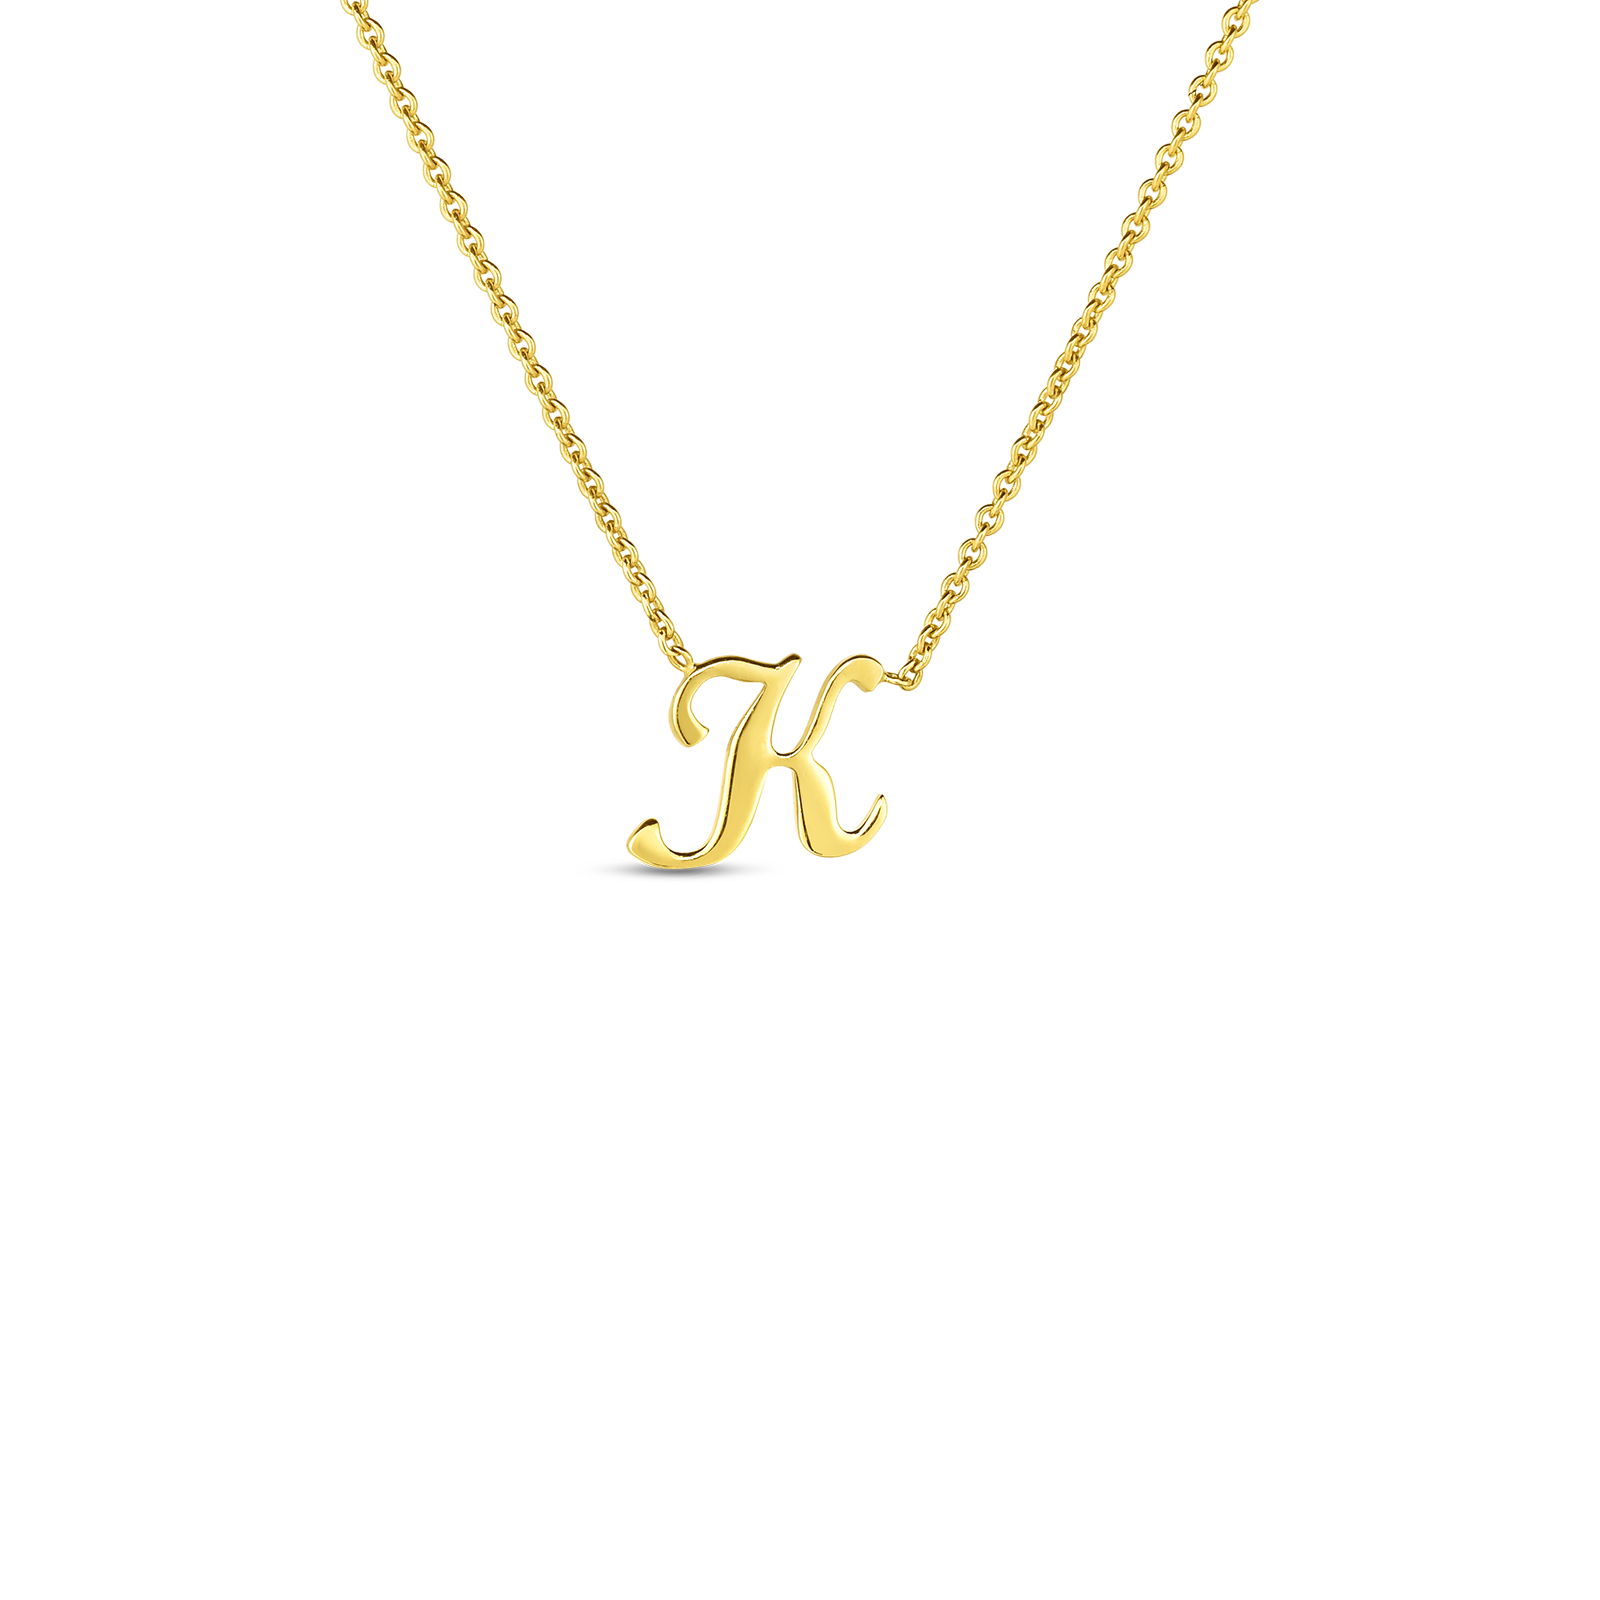 18k Small Script Initial 'K' Pendant On Chain